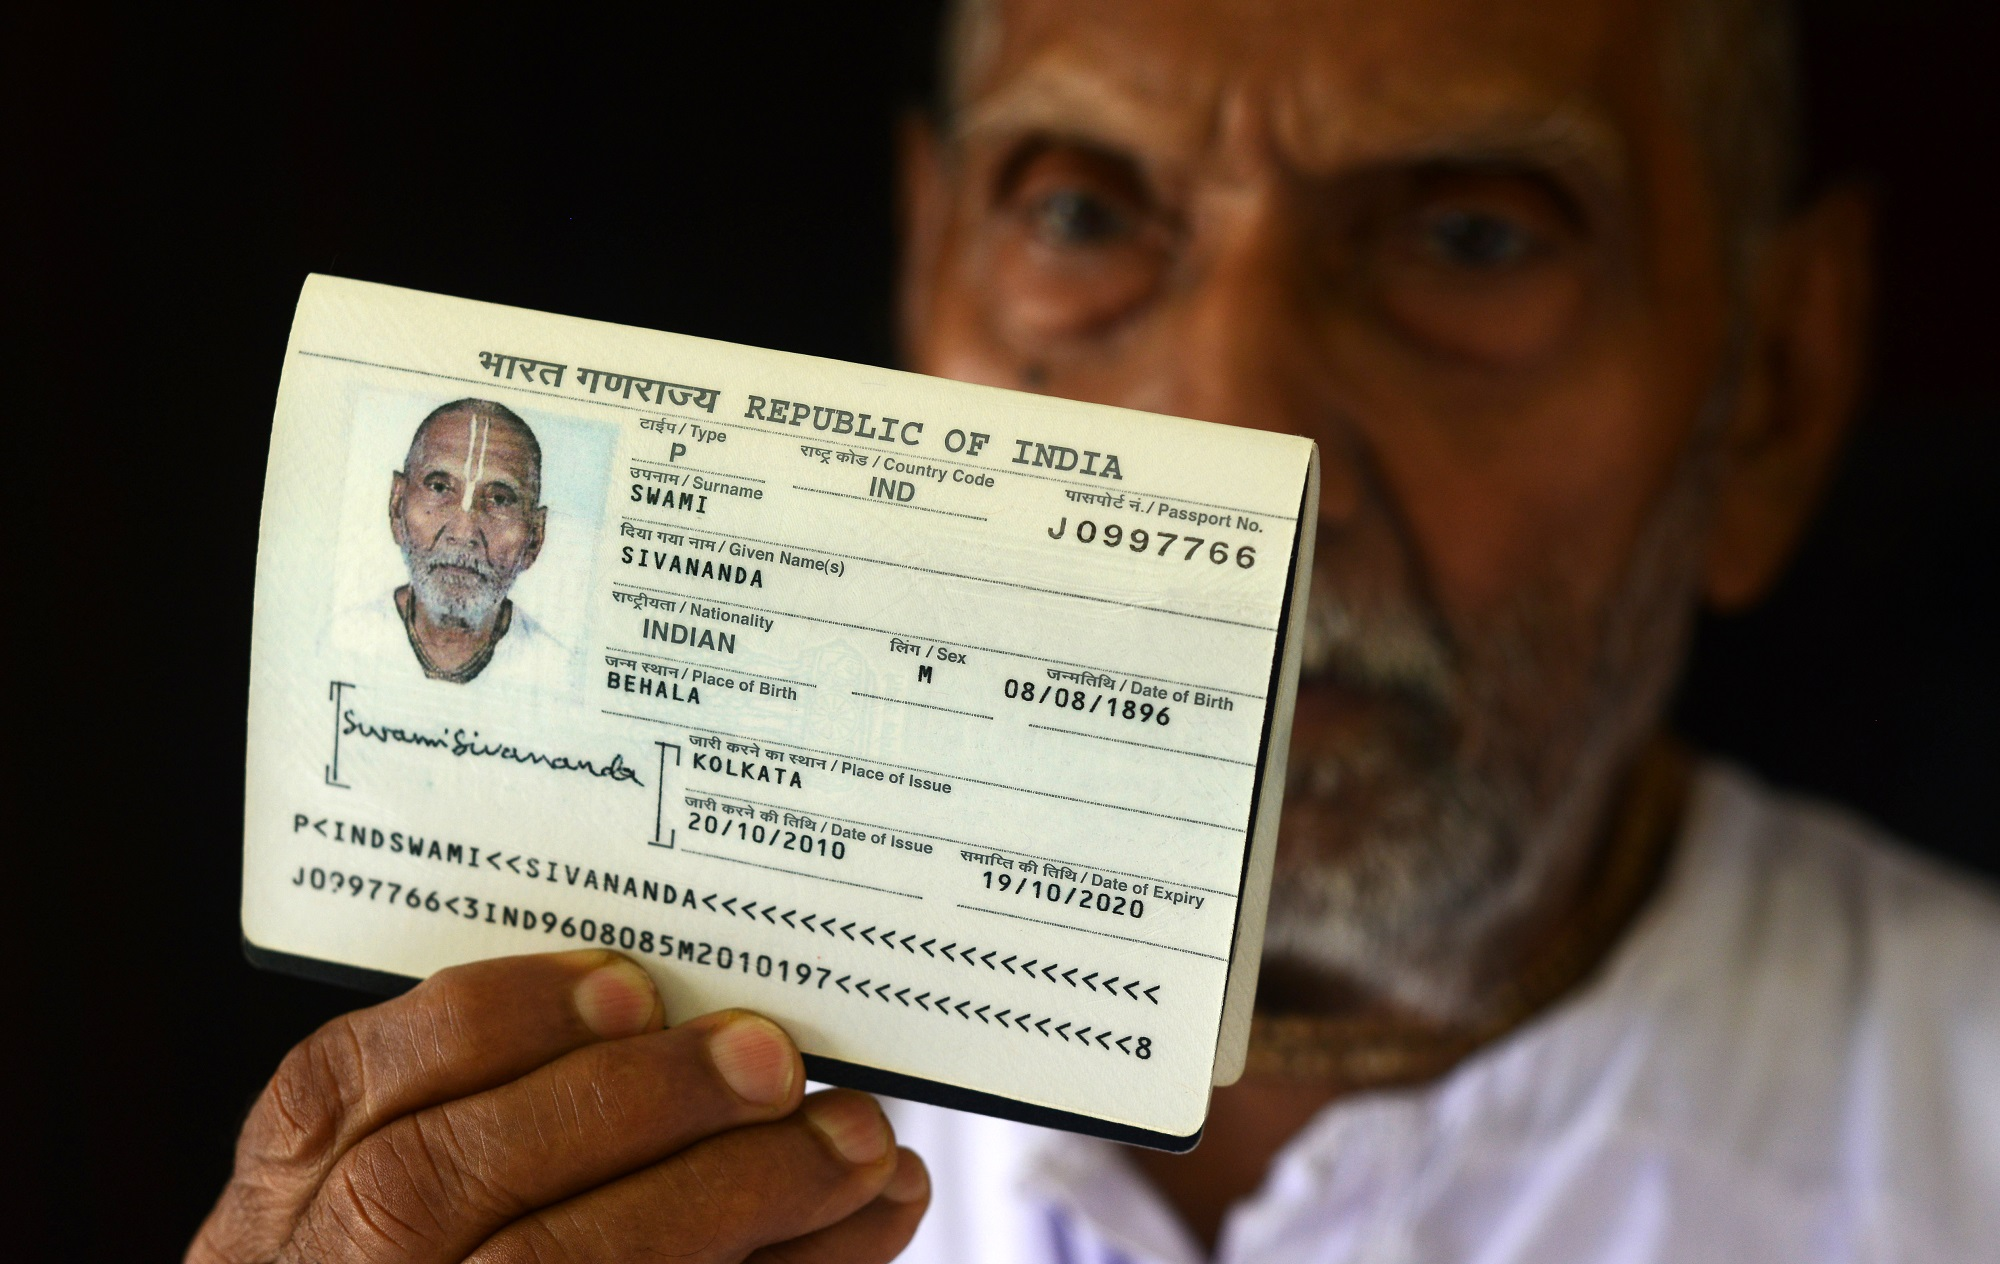 In this photograph taken on August 2, 2016, Indian monk Swami Sivananda, who claims to be 120 years old, holds up his passport in the house of one of his followers in Kolkata. An Indian monk who claims to be the oldest man to have ever lived at 120 years, says he owes his longevity to daily yoga and a life without sex or spices. Born on August 8, 1896, according to his passport, Hindu monk Swami Sivananda's life has spanned three centuries. He is now applying to Guinness World Records to stake his claim to the distinction. / AFP PHOTO / Dibyangshu SARKAR / TO GO WITH AFP STORY: ' India-Lifestyle-Oldest-Man' Feature by Dibyangshu SARKAR